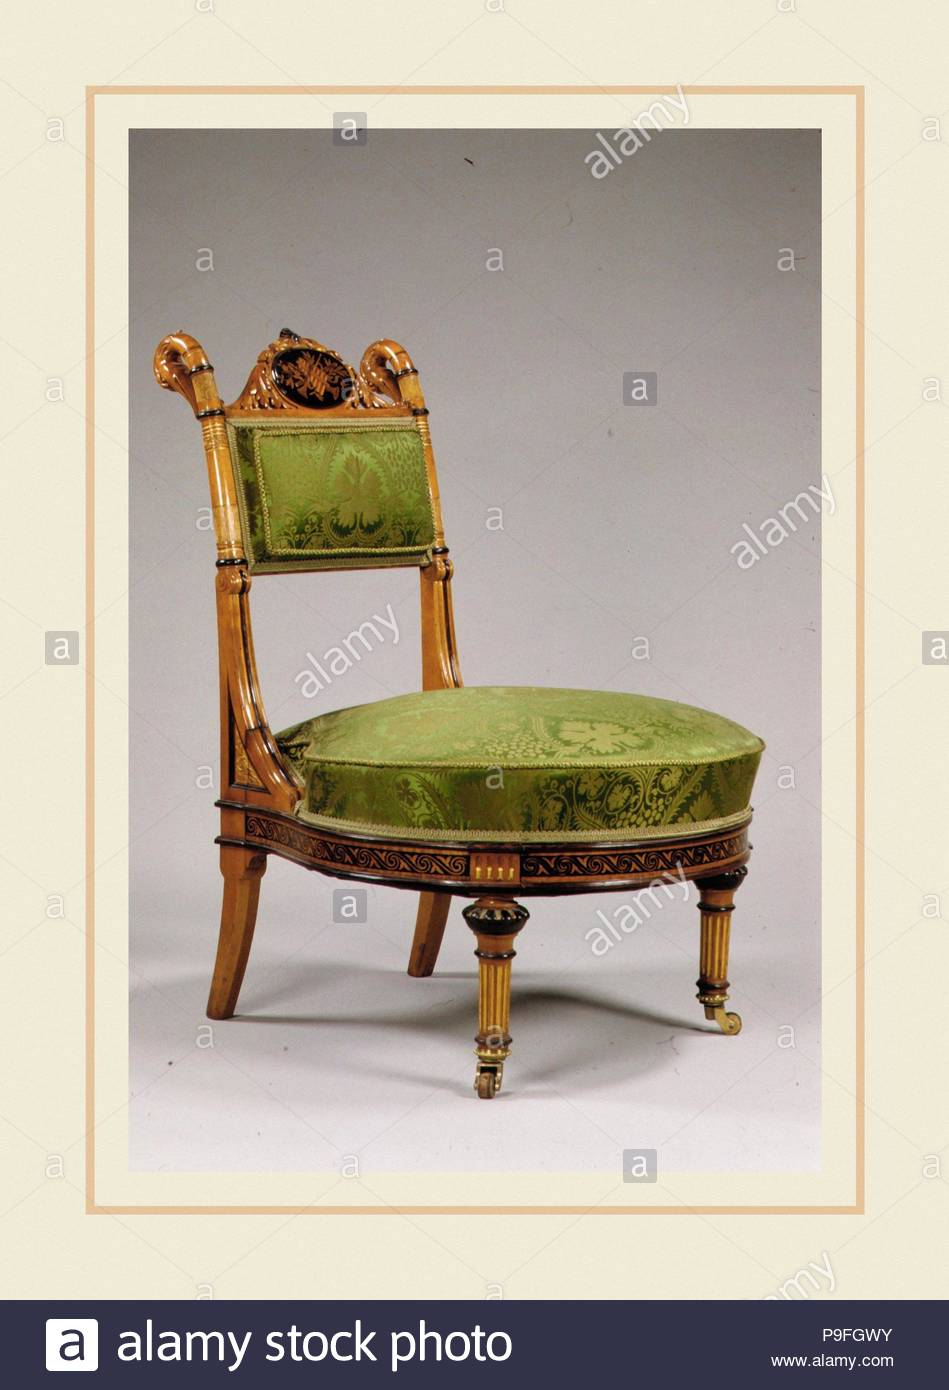 Chair 1867 69 Made In New York New York United States American